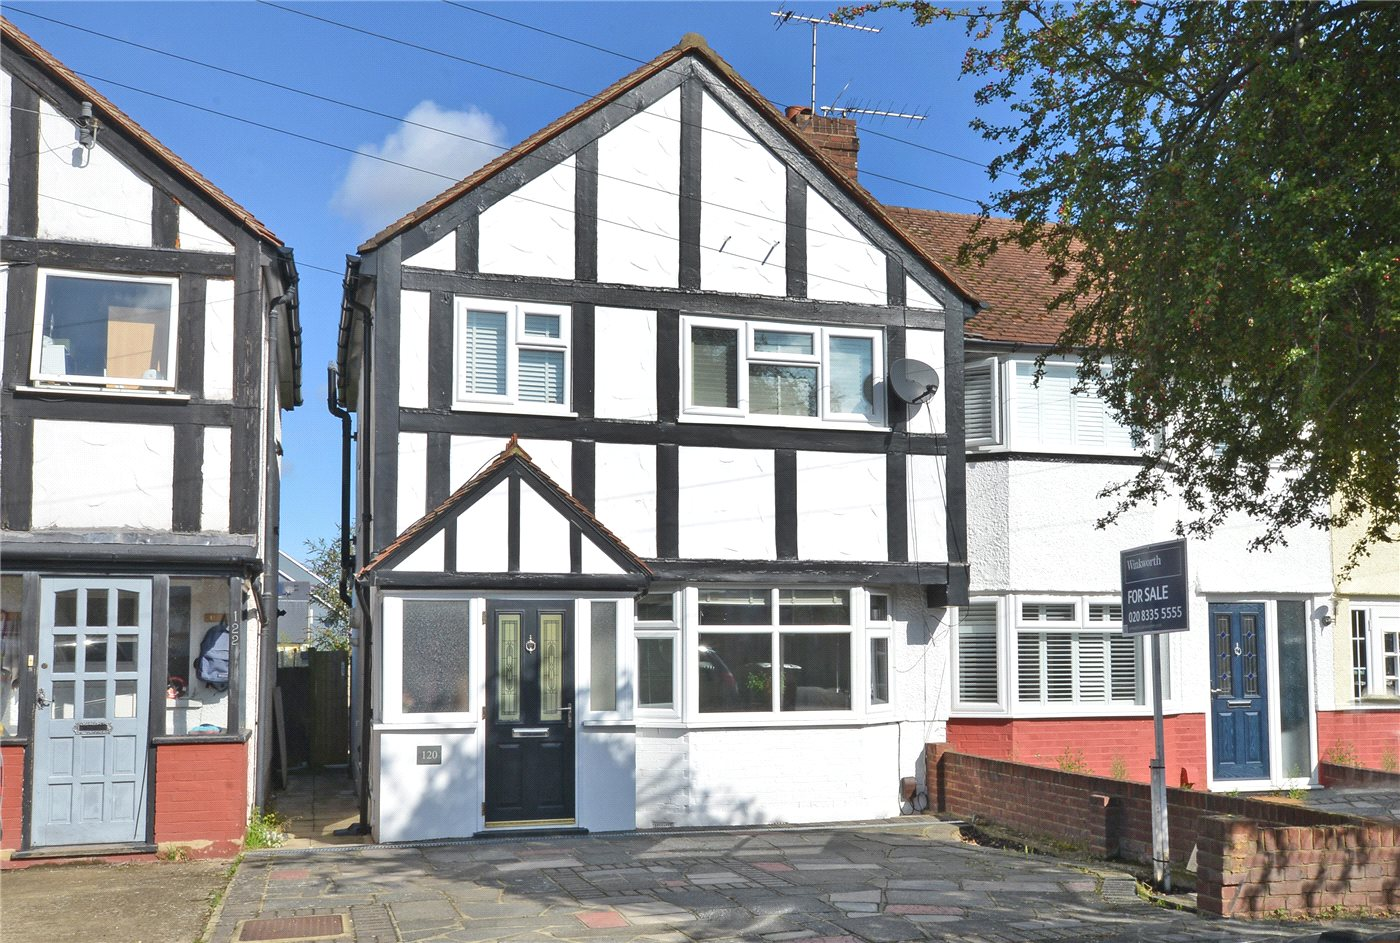 3 Bedrooms End Of Terrace House for sale in Buckland Way, Worcester Park, KT4